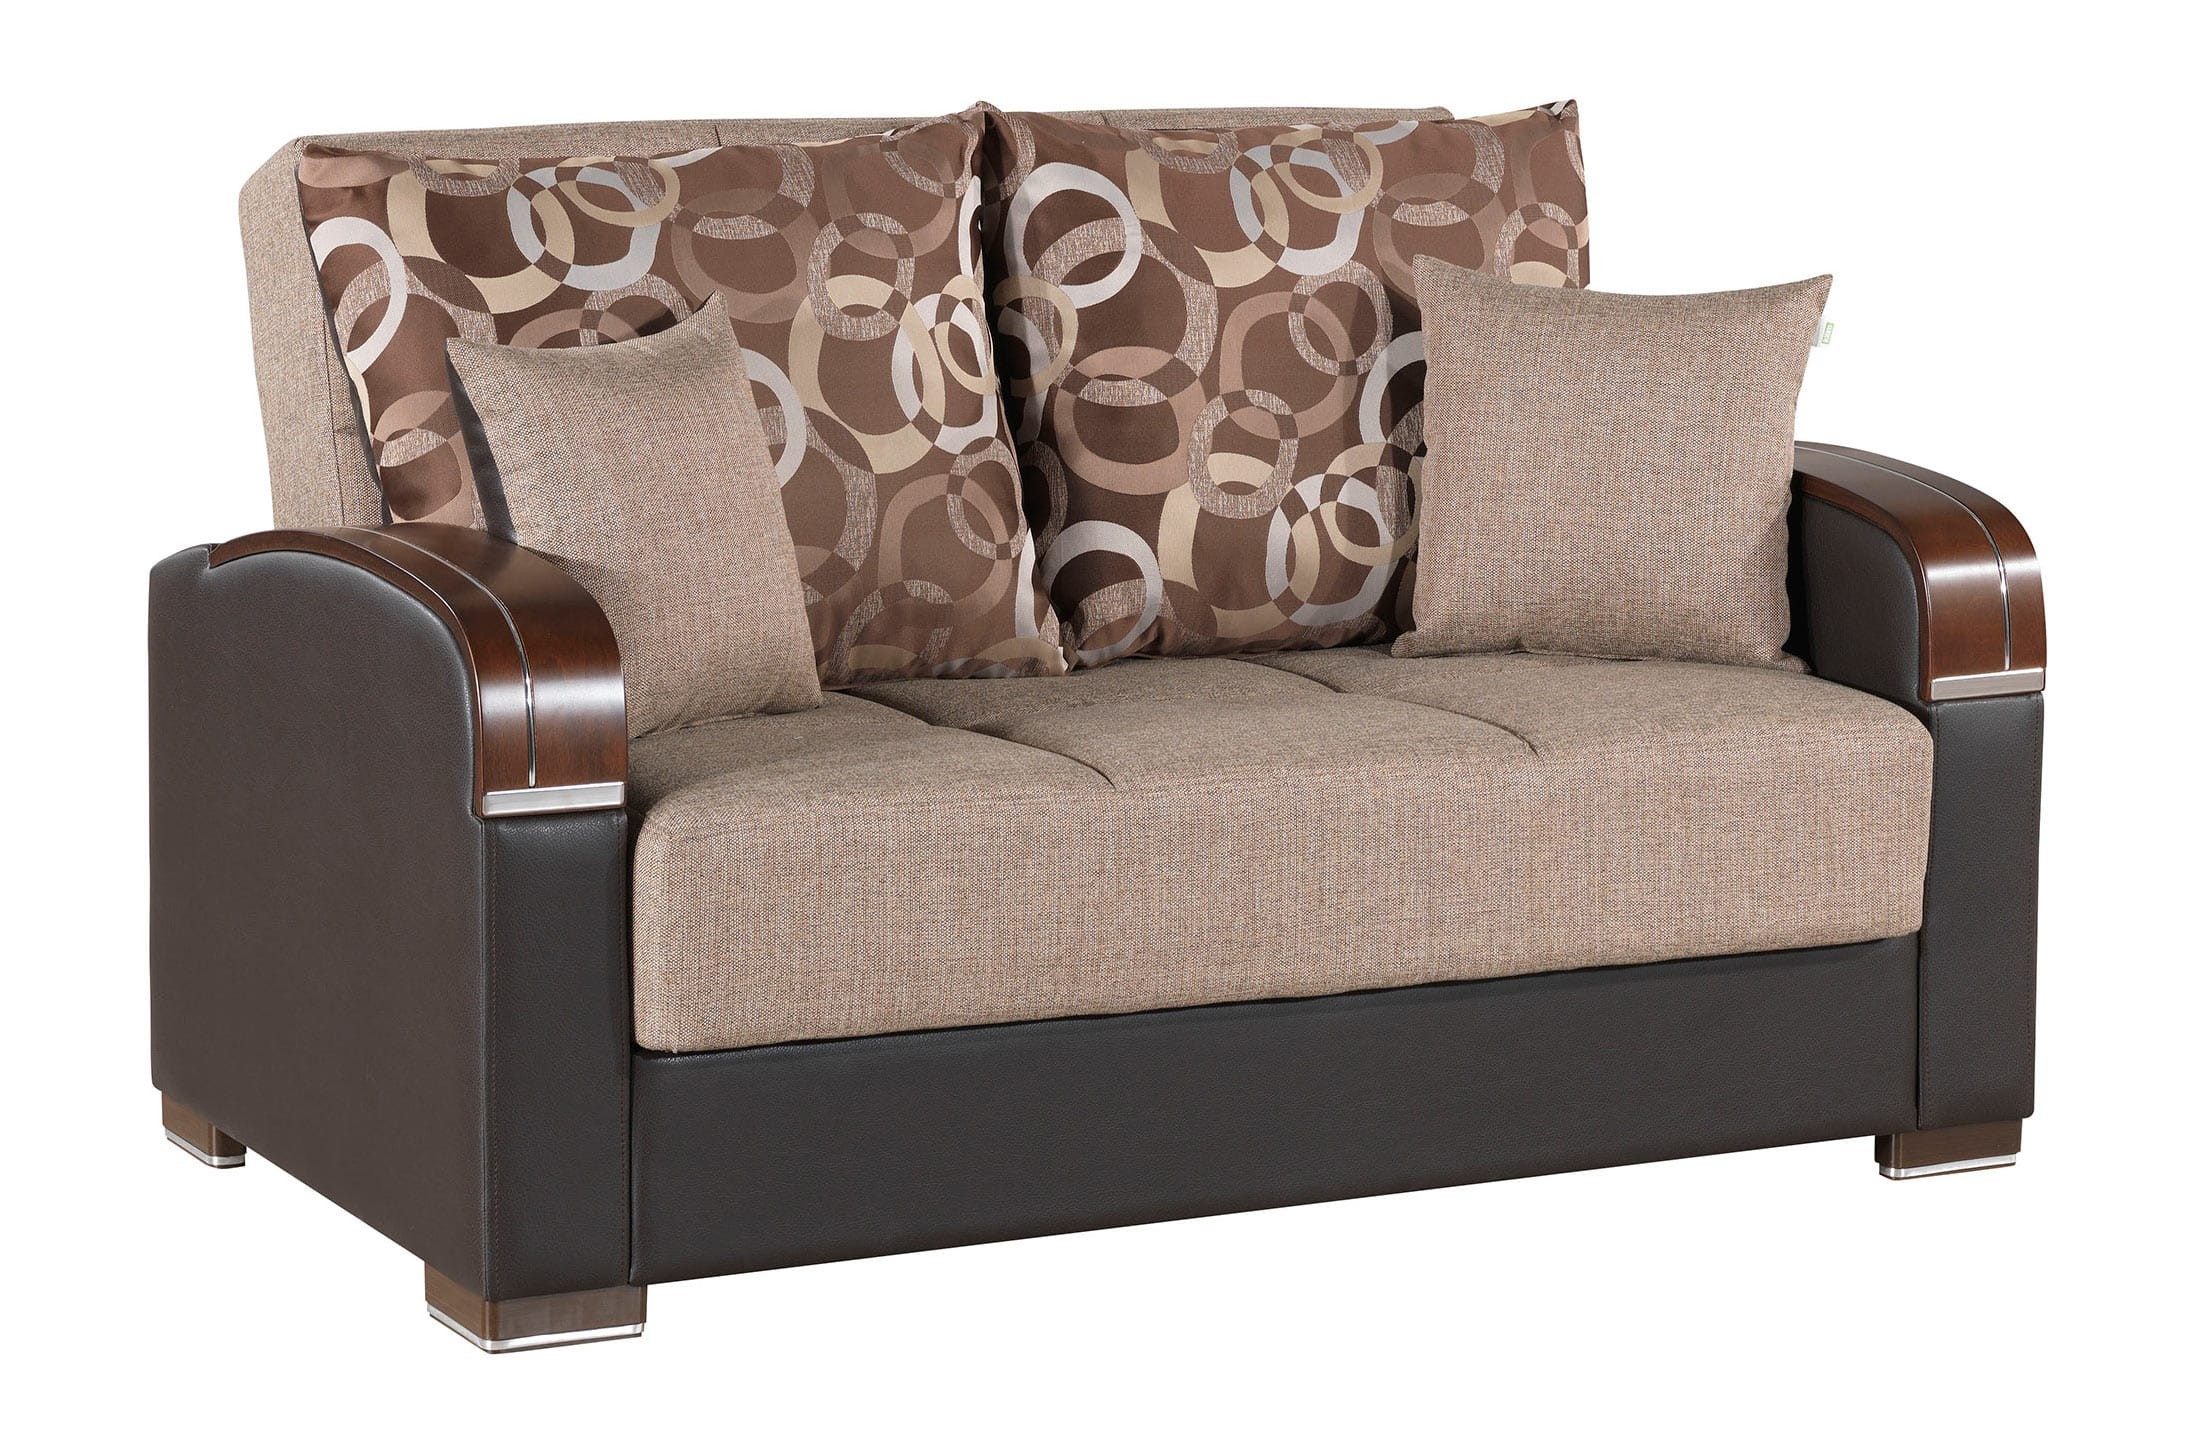 Mobimax Brown Loveseat by Casamode